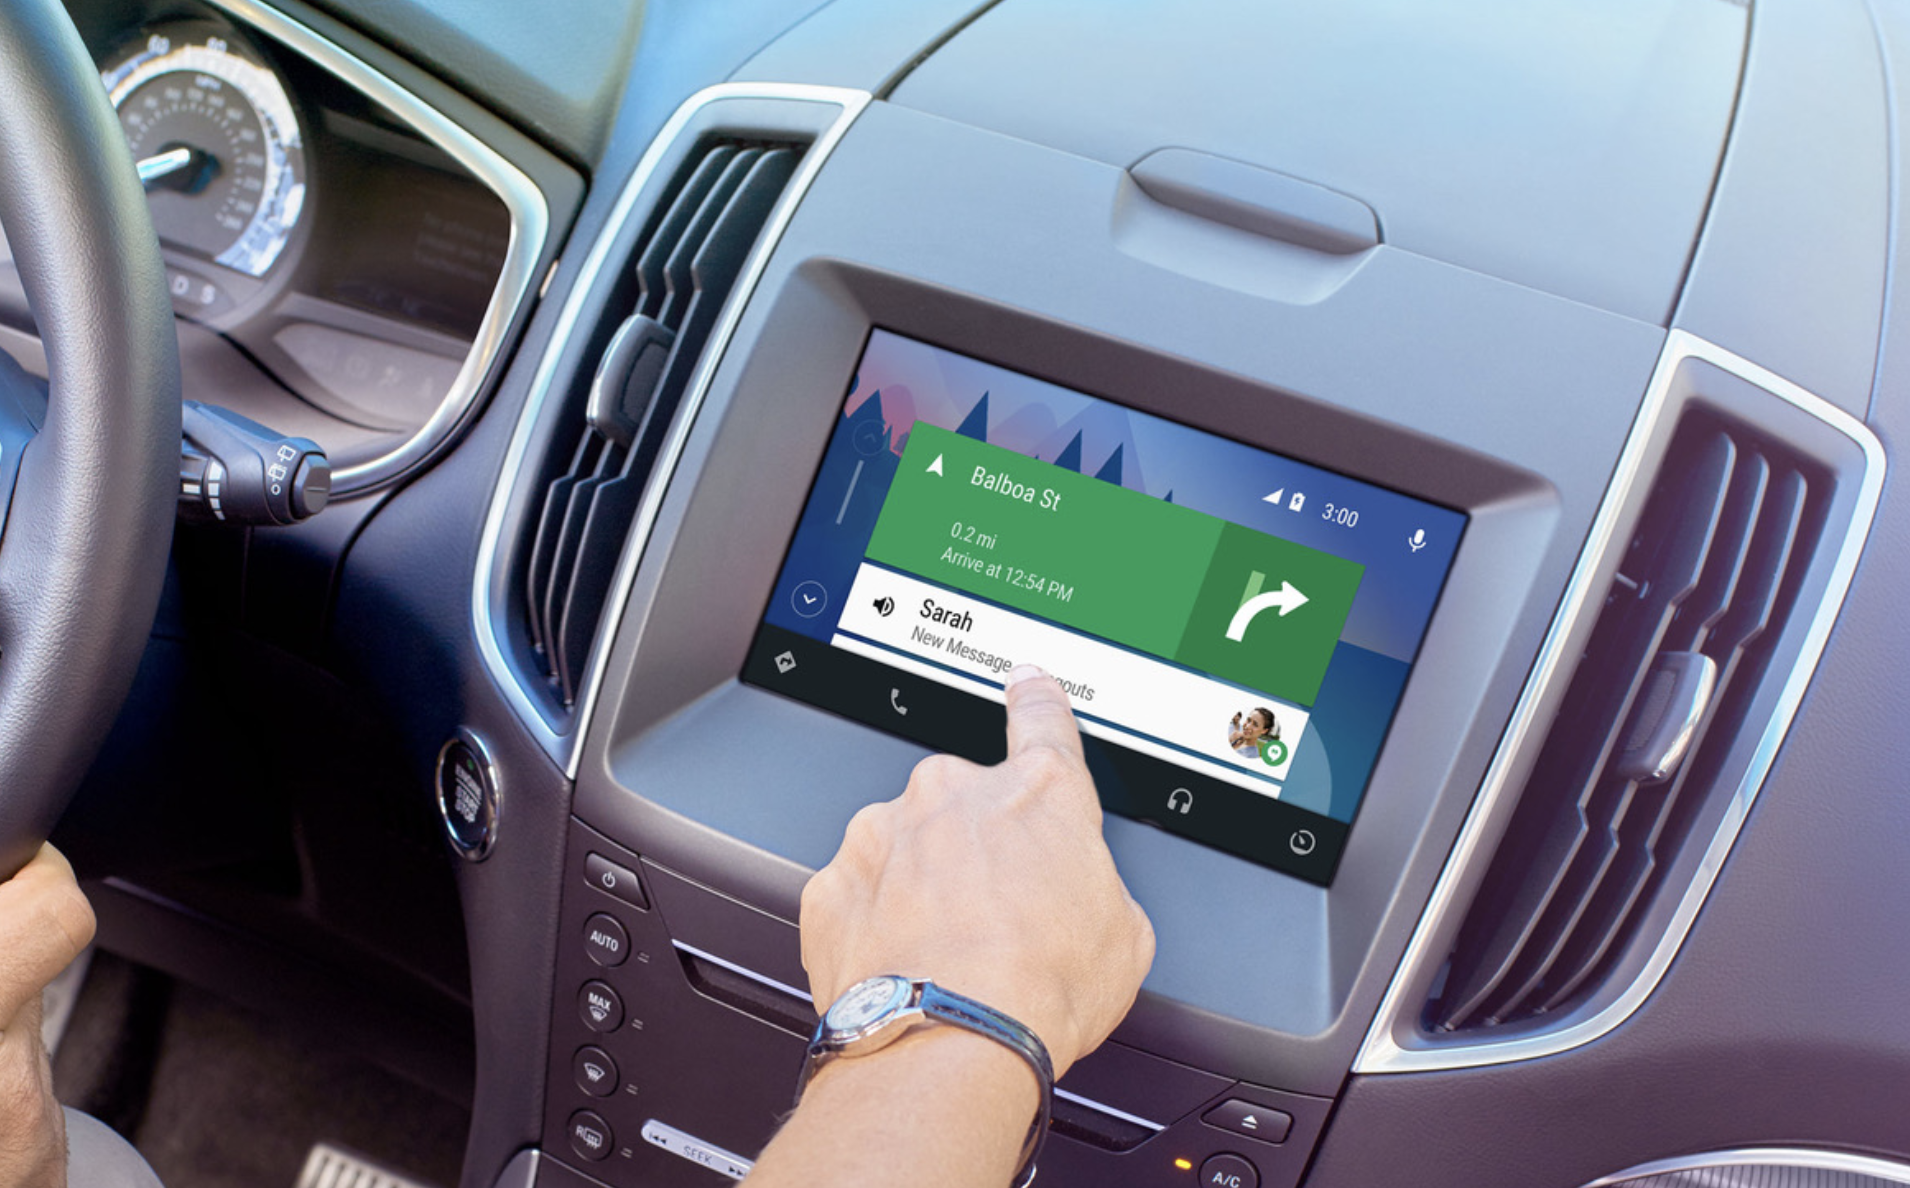 Android Auto now works without wires if you have the right hardware